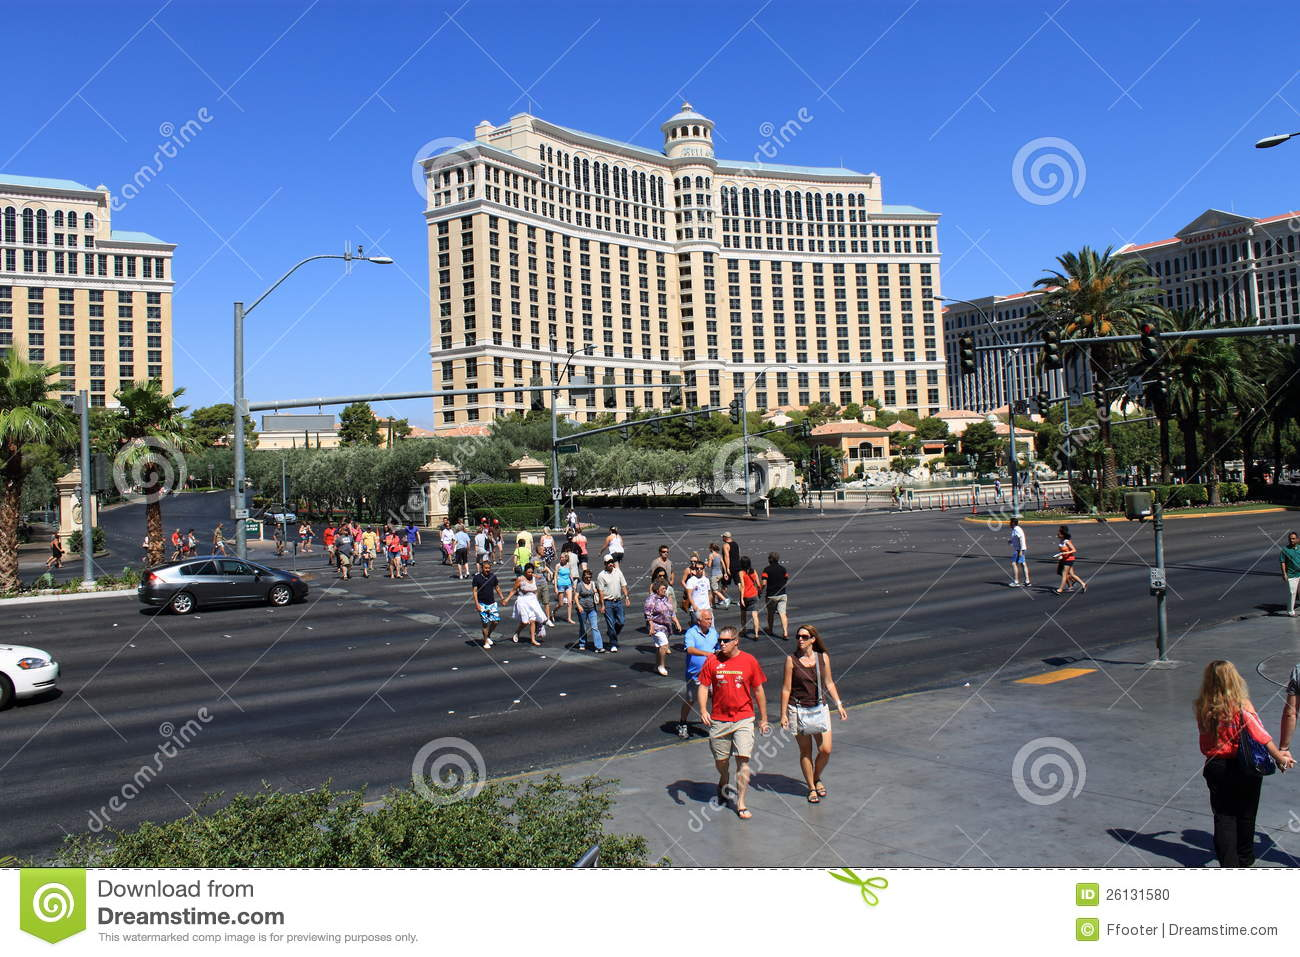 caesars palace las vegas map with Stock Photo Las Vegas Street Scene Image26131580 on Why Rare Earth Mining In The West Is A Bust further What Happpens In Vegas Doesnt Always Stay In Vegas also LocationPhotoDirectLink G45963 D91762 I101564870 Caesars Palace Las Vegas Nevada in addition Cost Of Las Vegas 51s New Stadium Similar To Other Ballparks further Stock Photo Las Vegas Street Scene Image26131580.